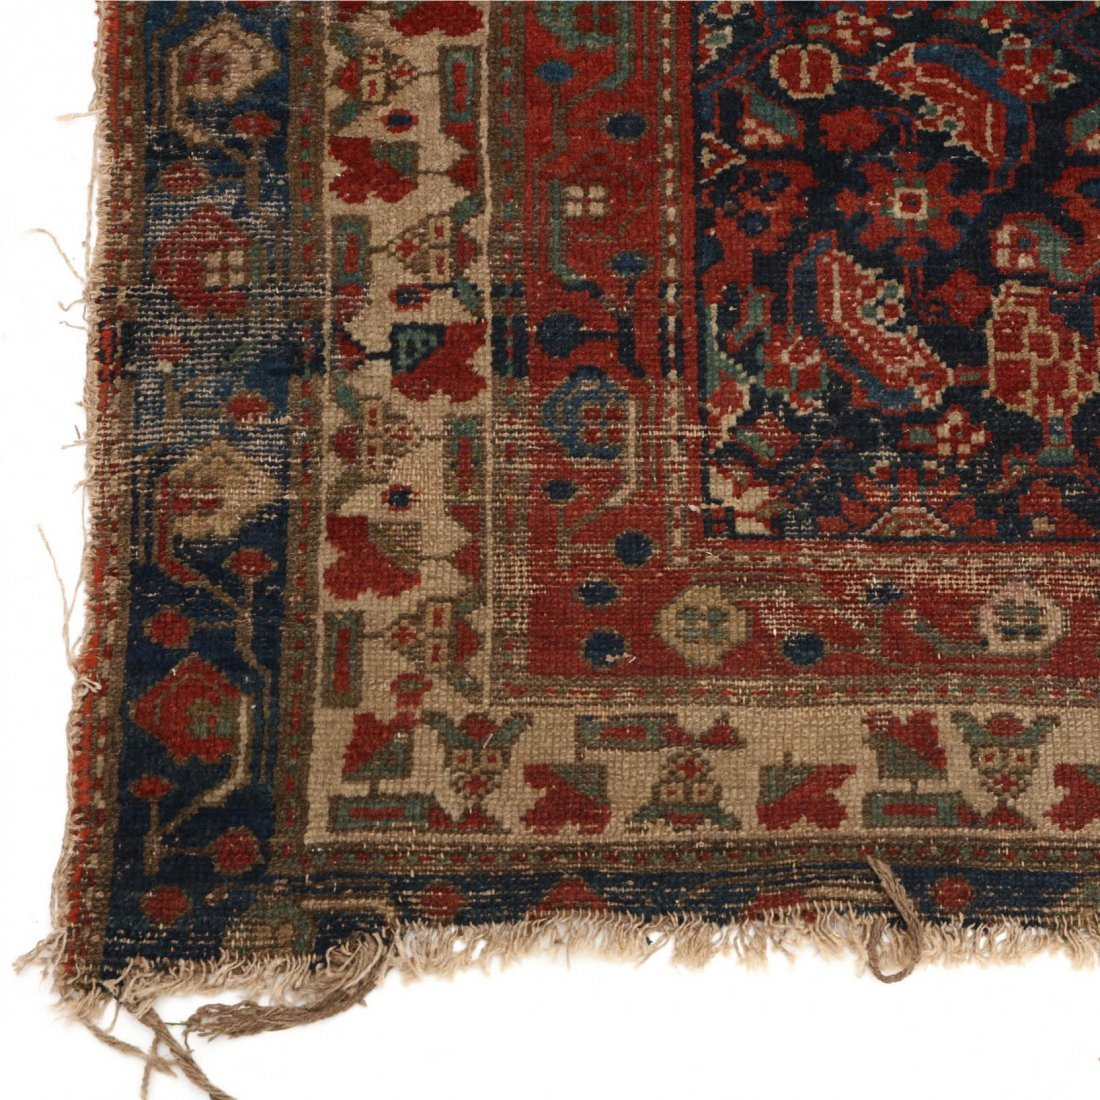 Two Persian Area Rugs - 5